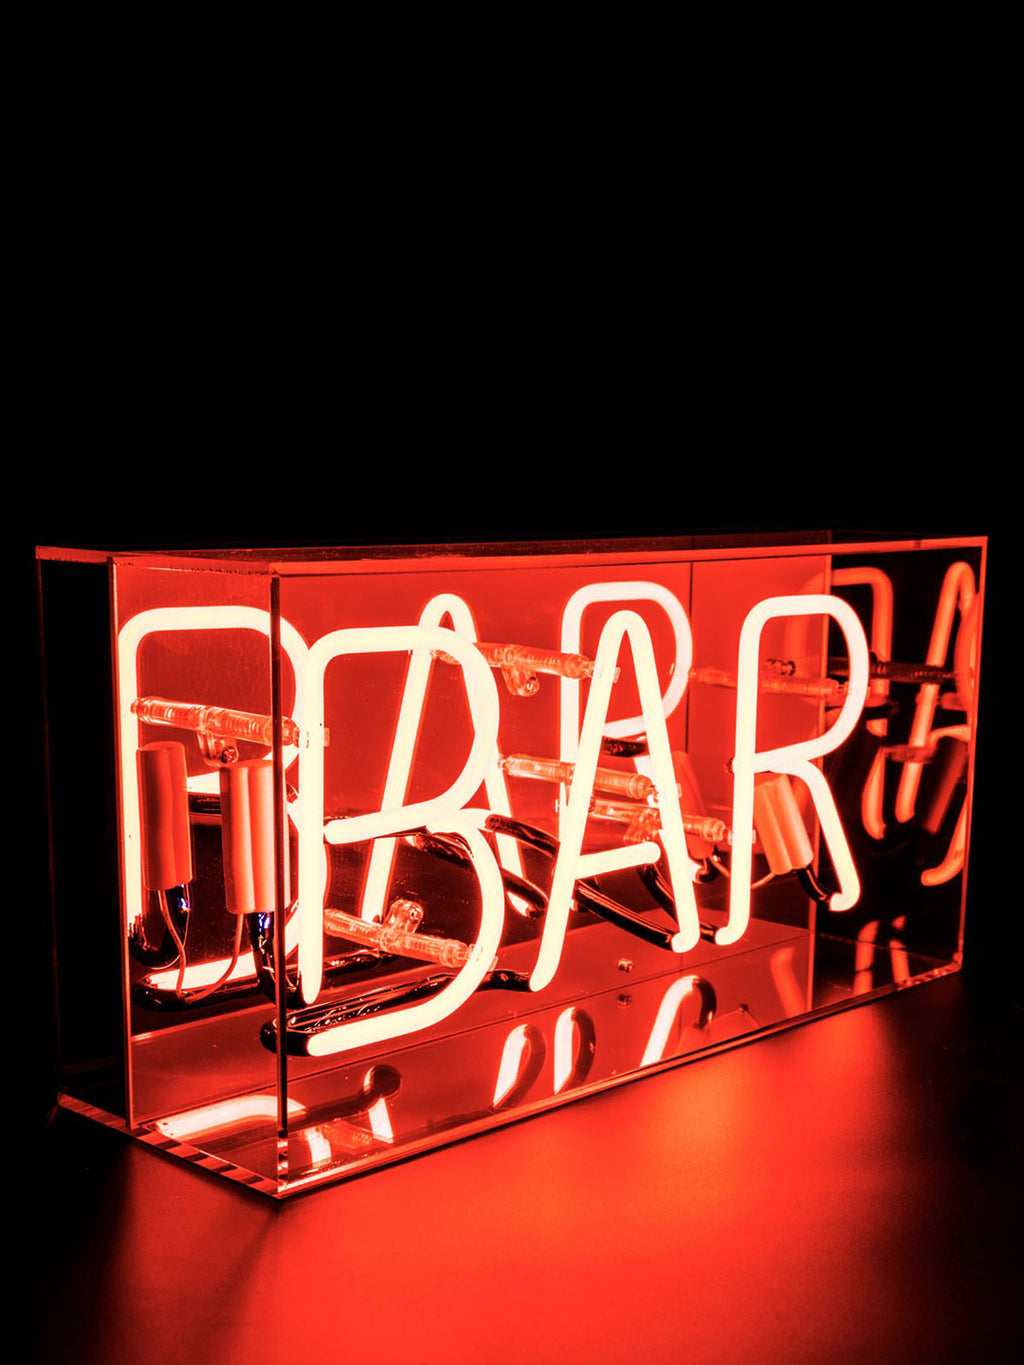 'Bar' Acrylic Neon Light Box